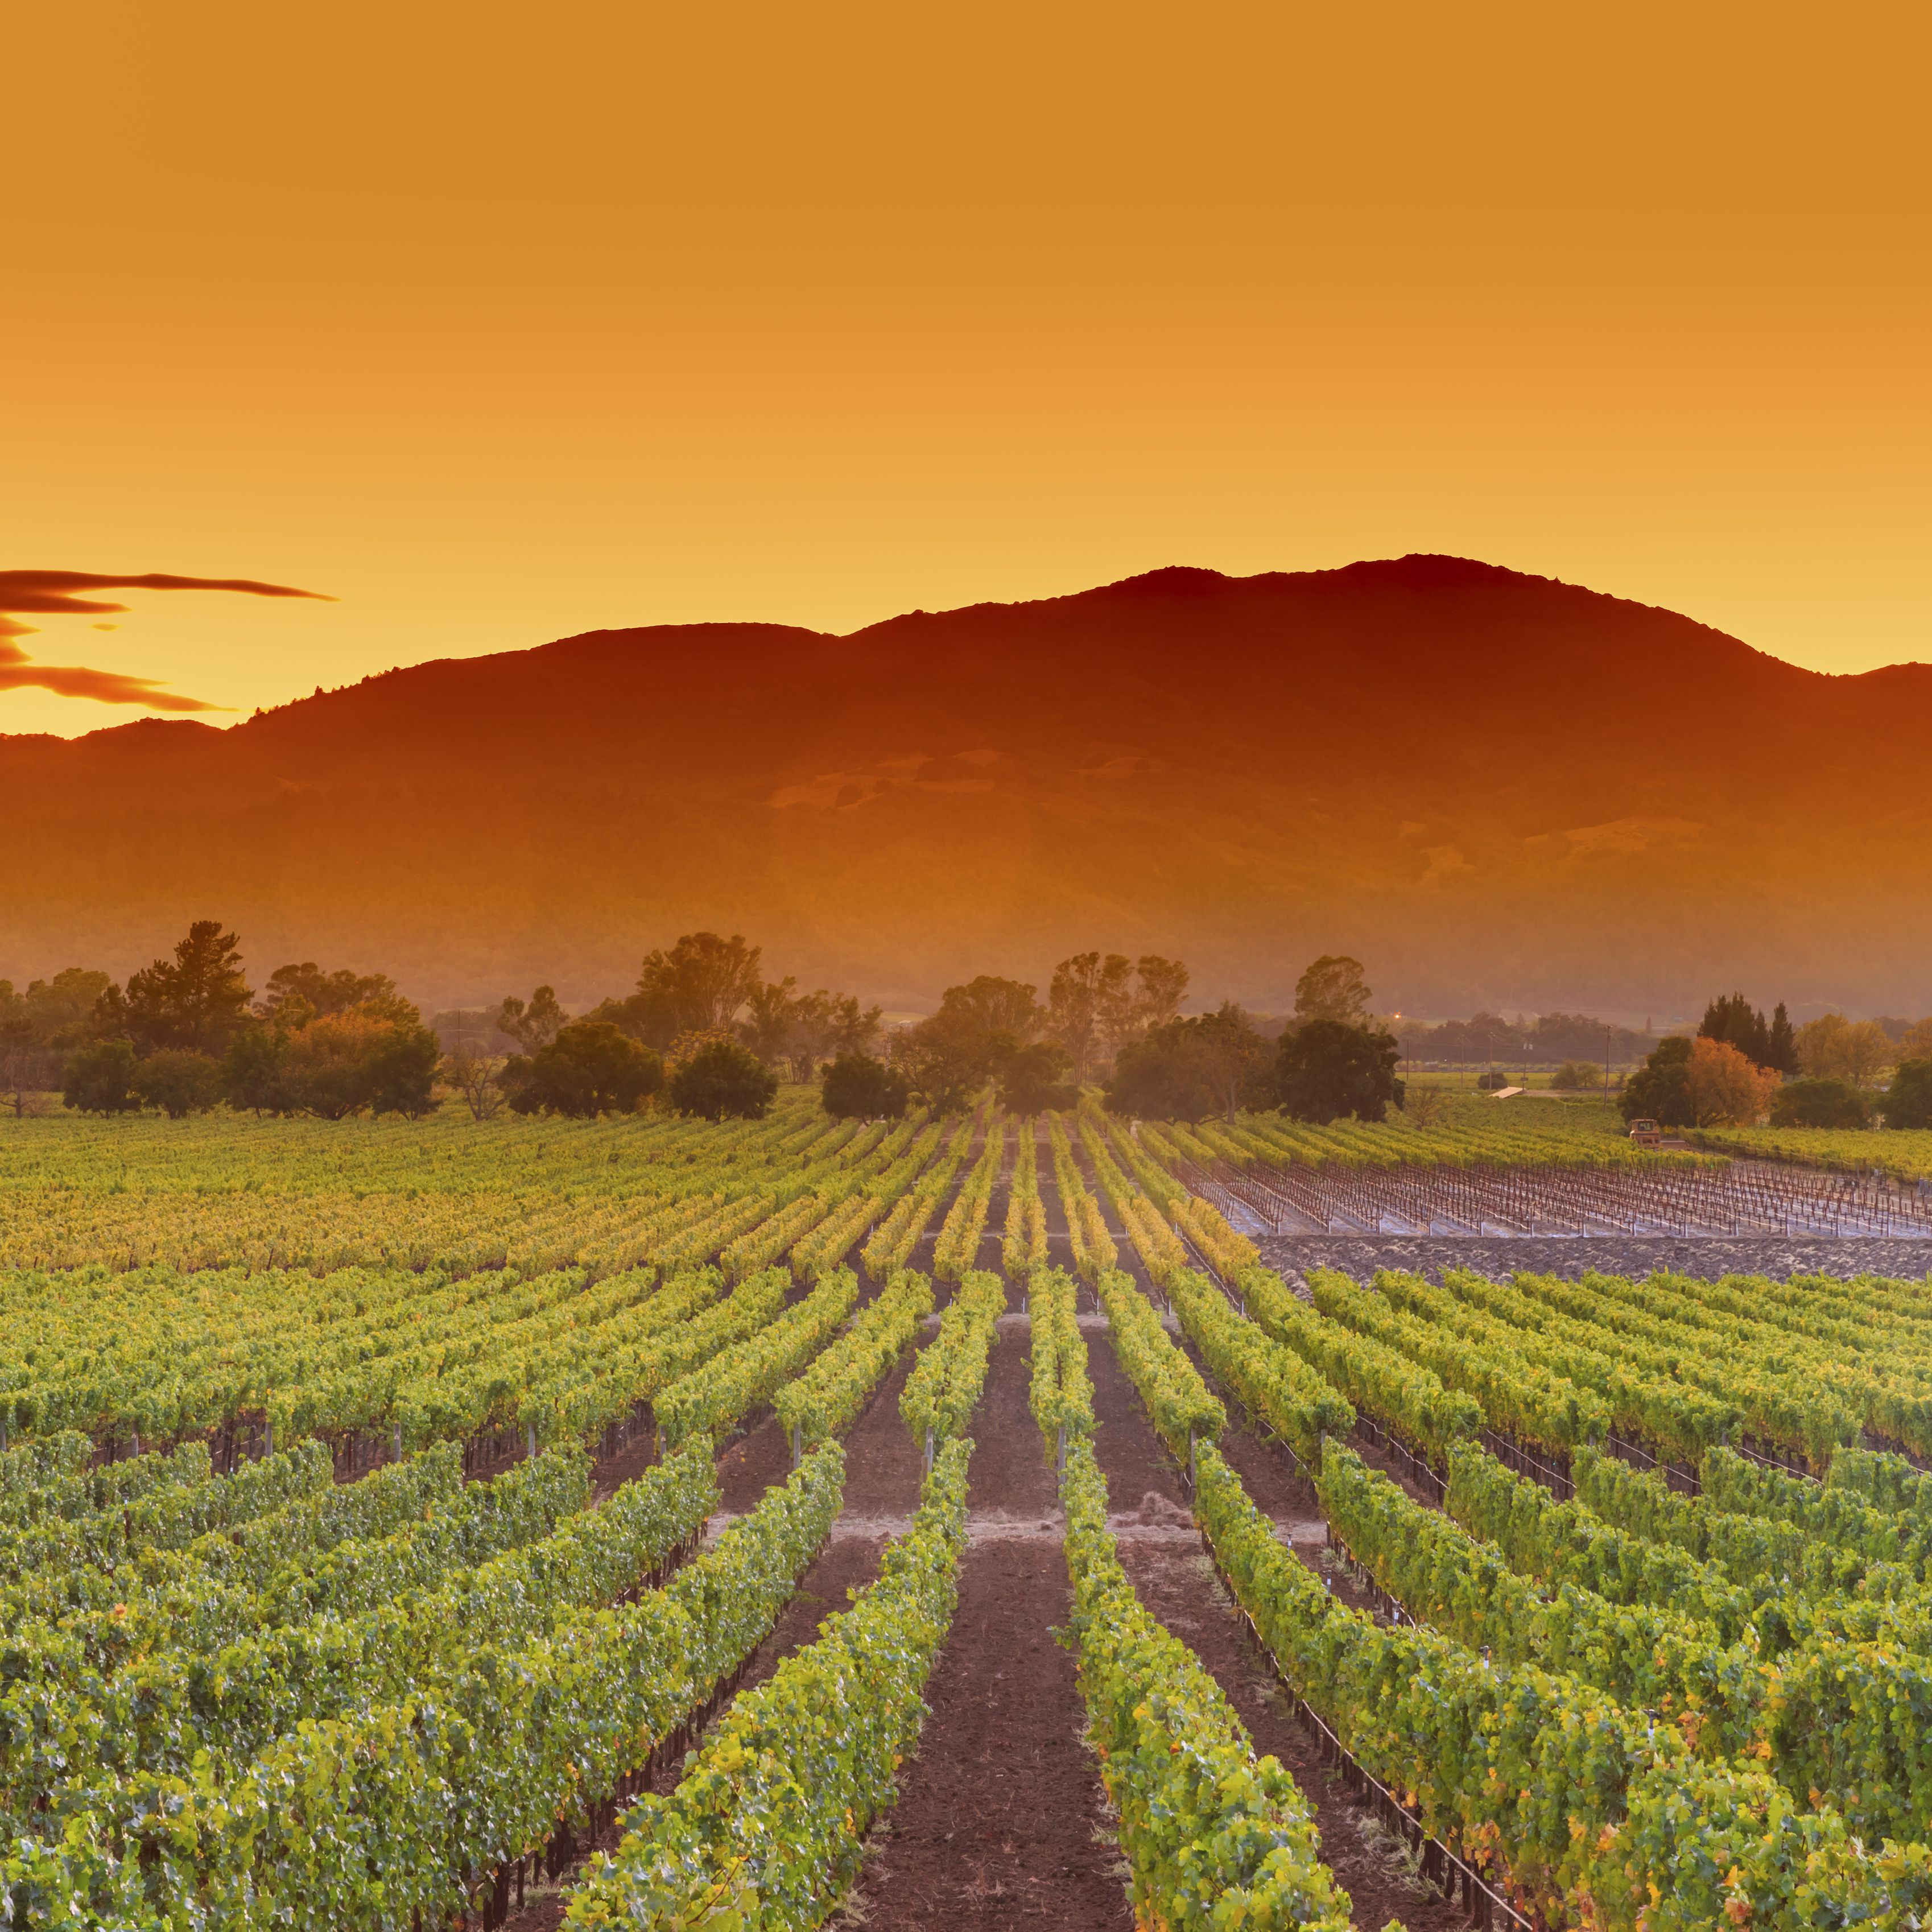 napa-valley-california-wine-country-vineyard-field-harvest-for-winery-494416494-28b52eb2c8ca415a93be31caa5bba097.jpg